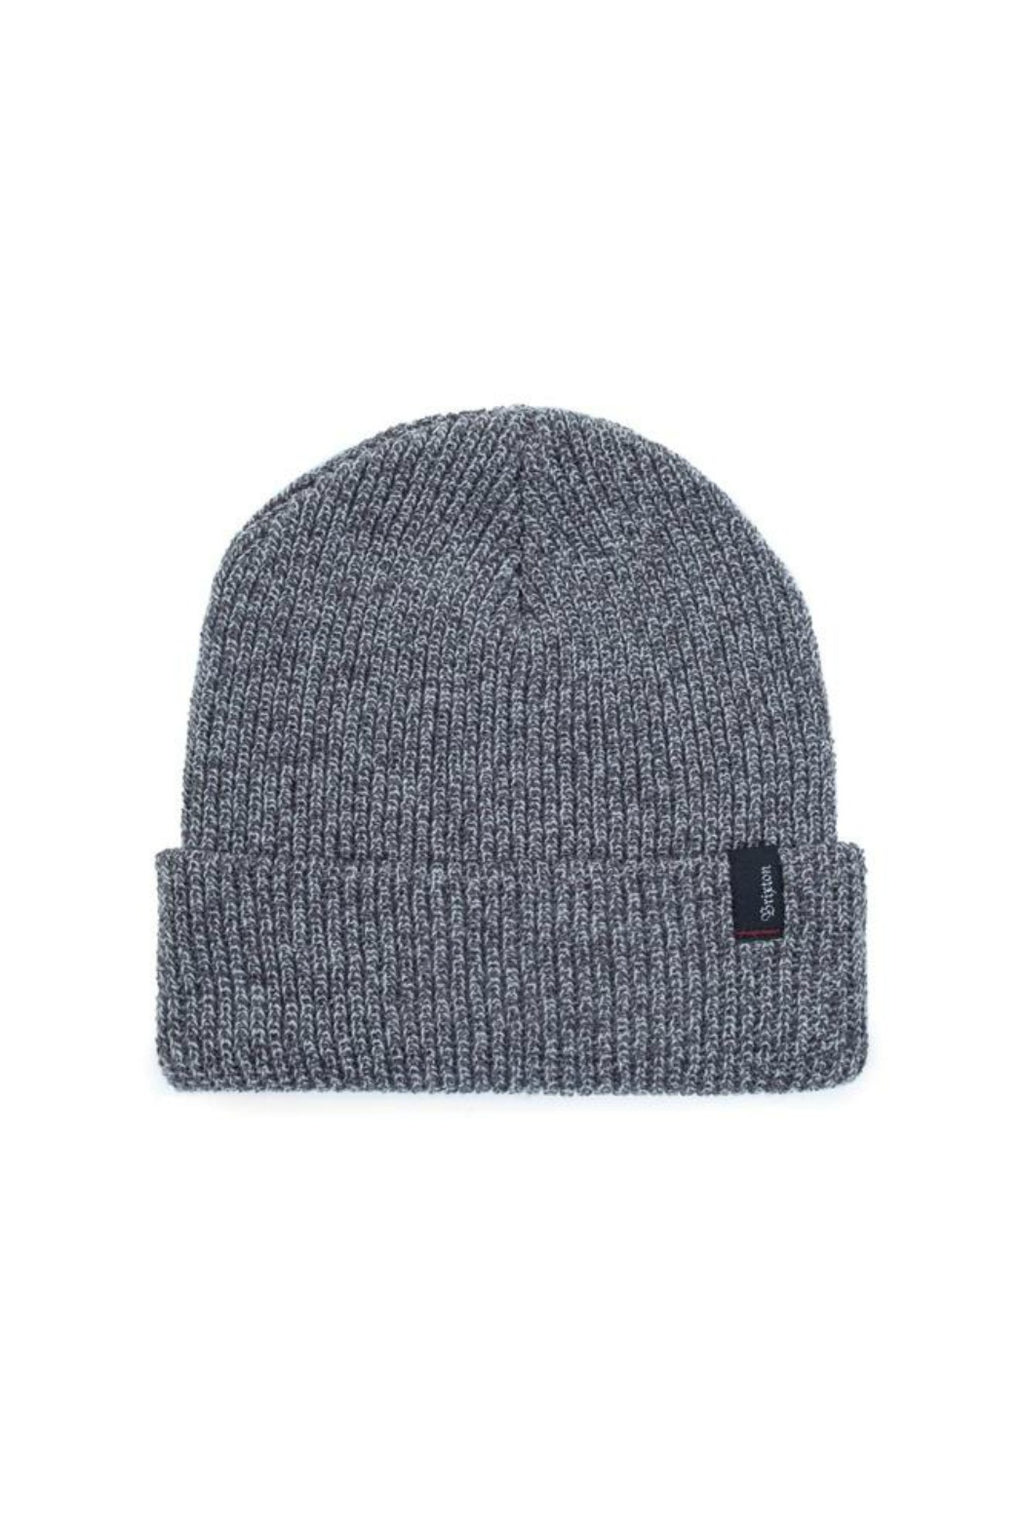 Brixton Heist Beanie in Grey/Dark Grey